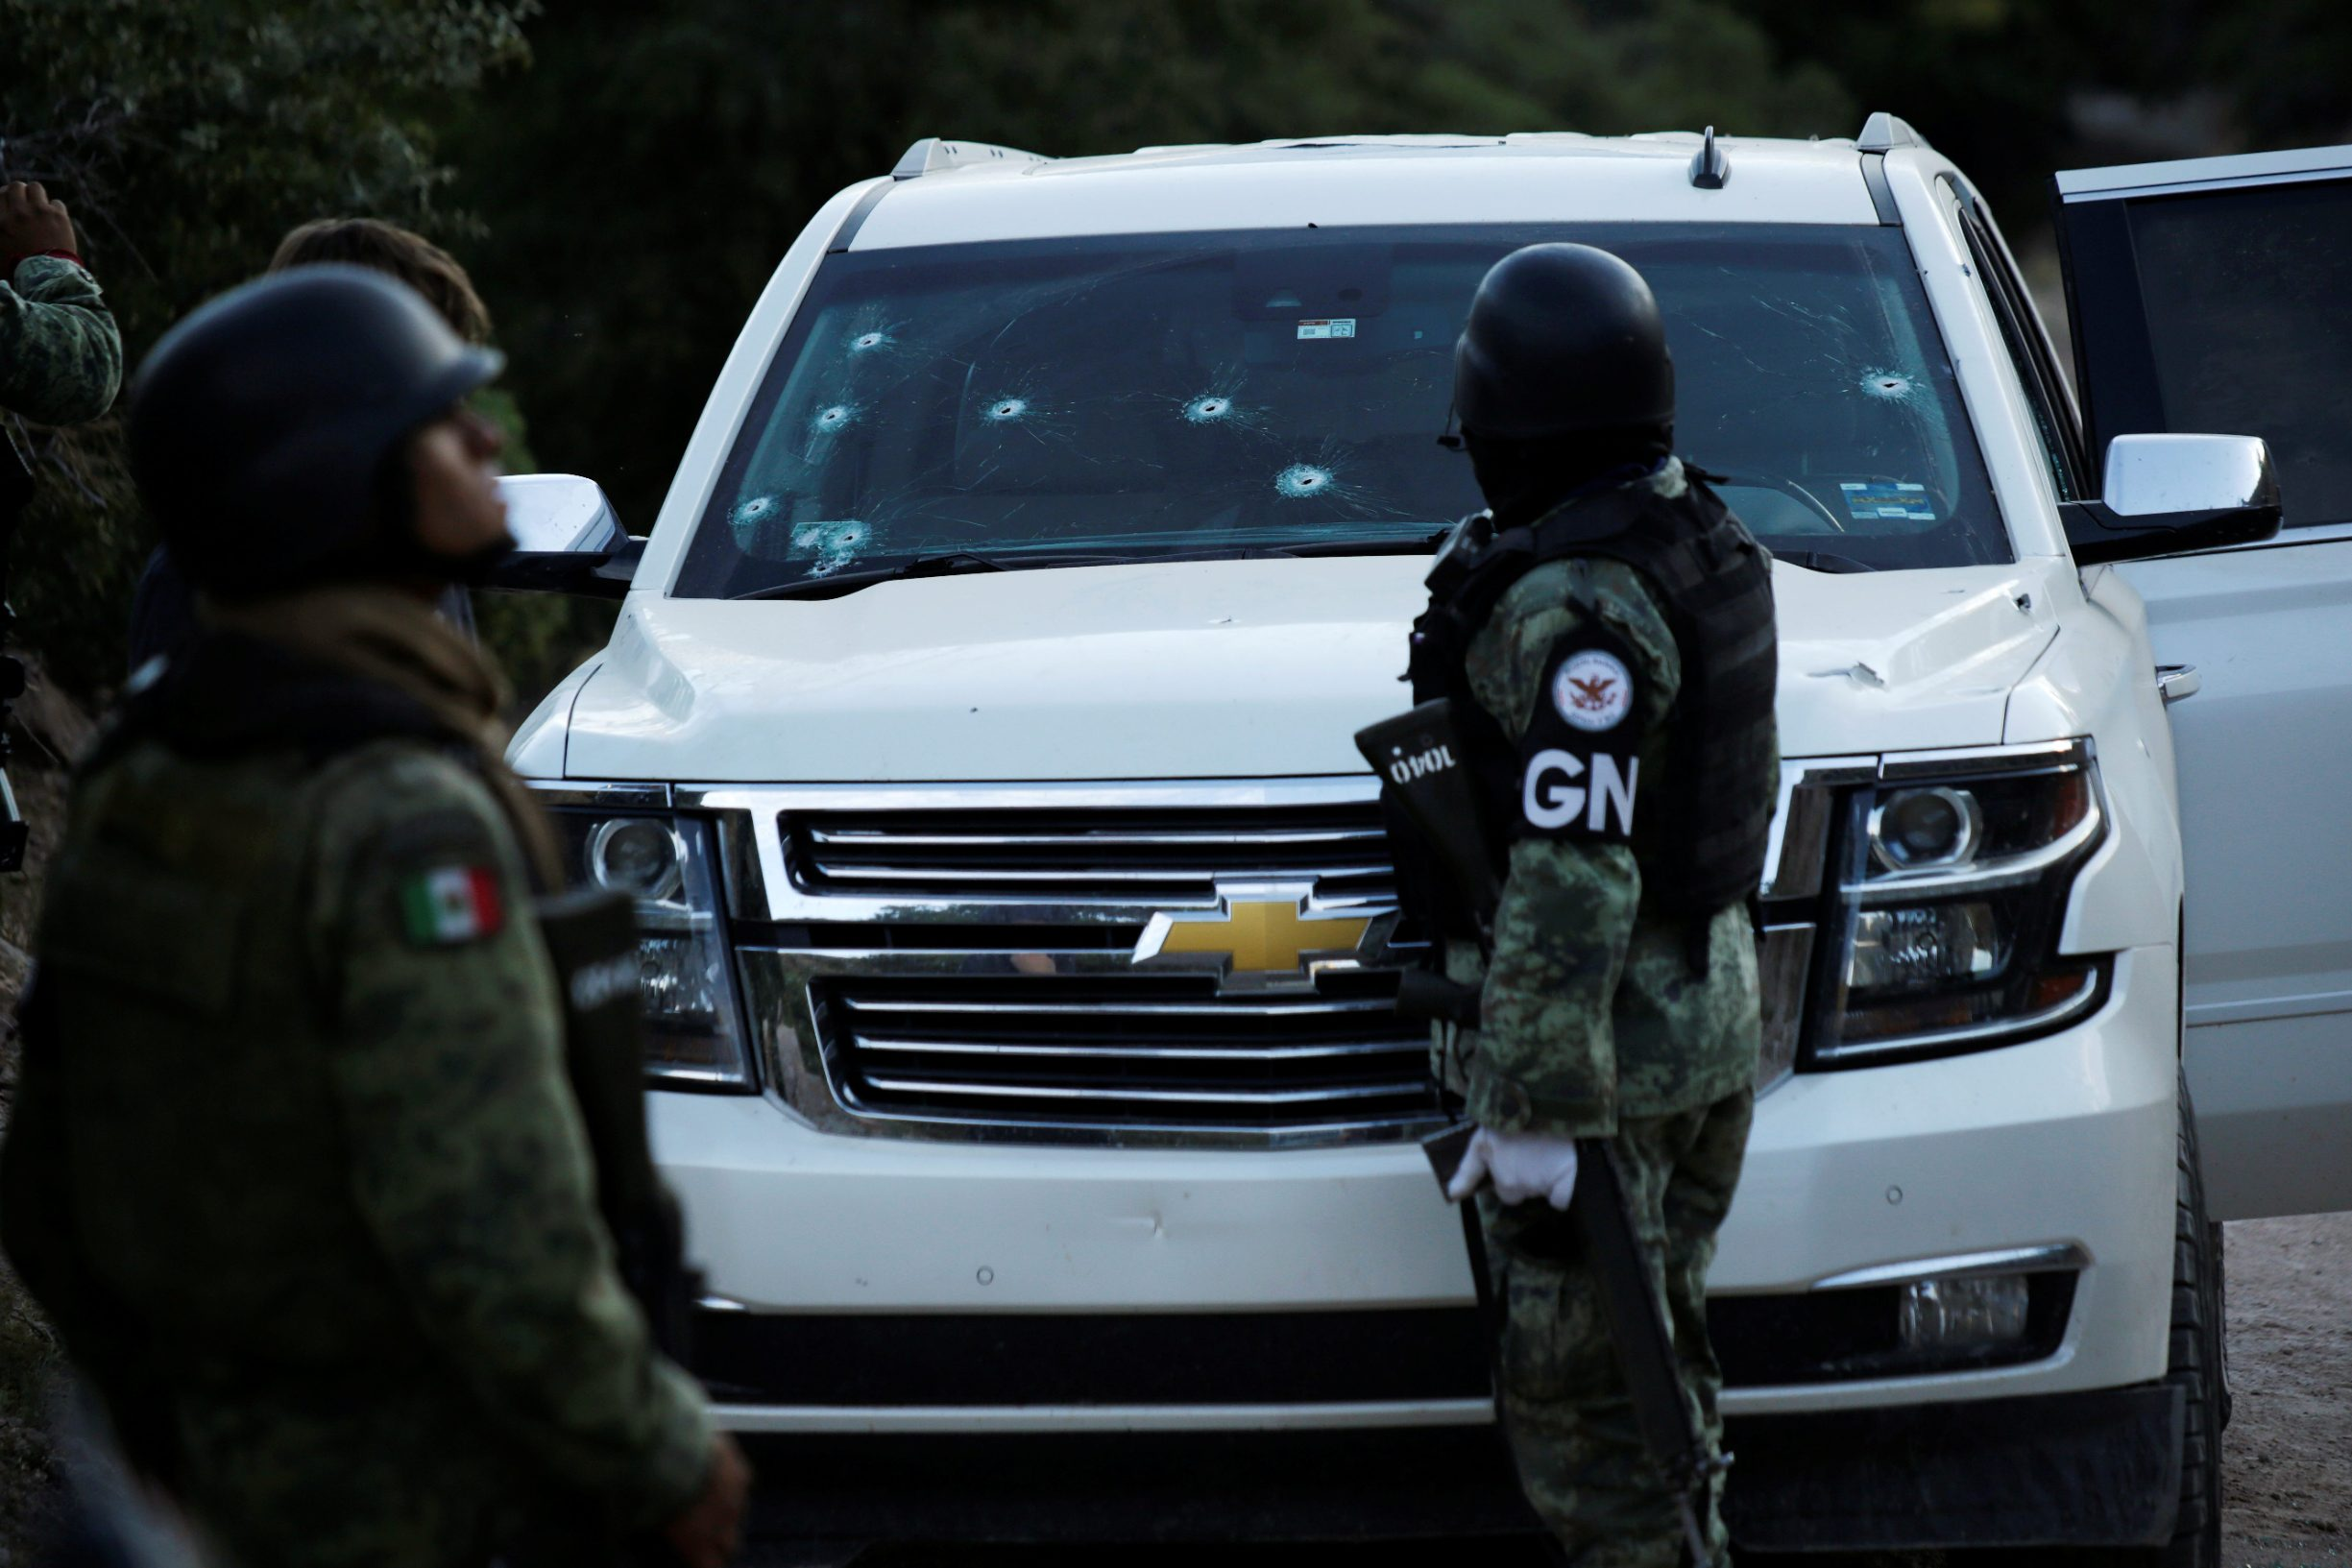 Soldiers assigned to Mexico's National Guard stand by a bullet-riddled vehicle belonging to one of the Mexican-American Mormon families that were killed by unknown assailants, in Bavispe, Sonora state, Mexico November 5, 2019. REUTERS/Jose Luis Gonzalez